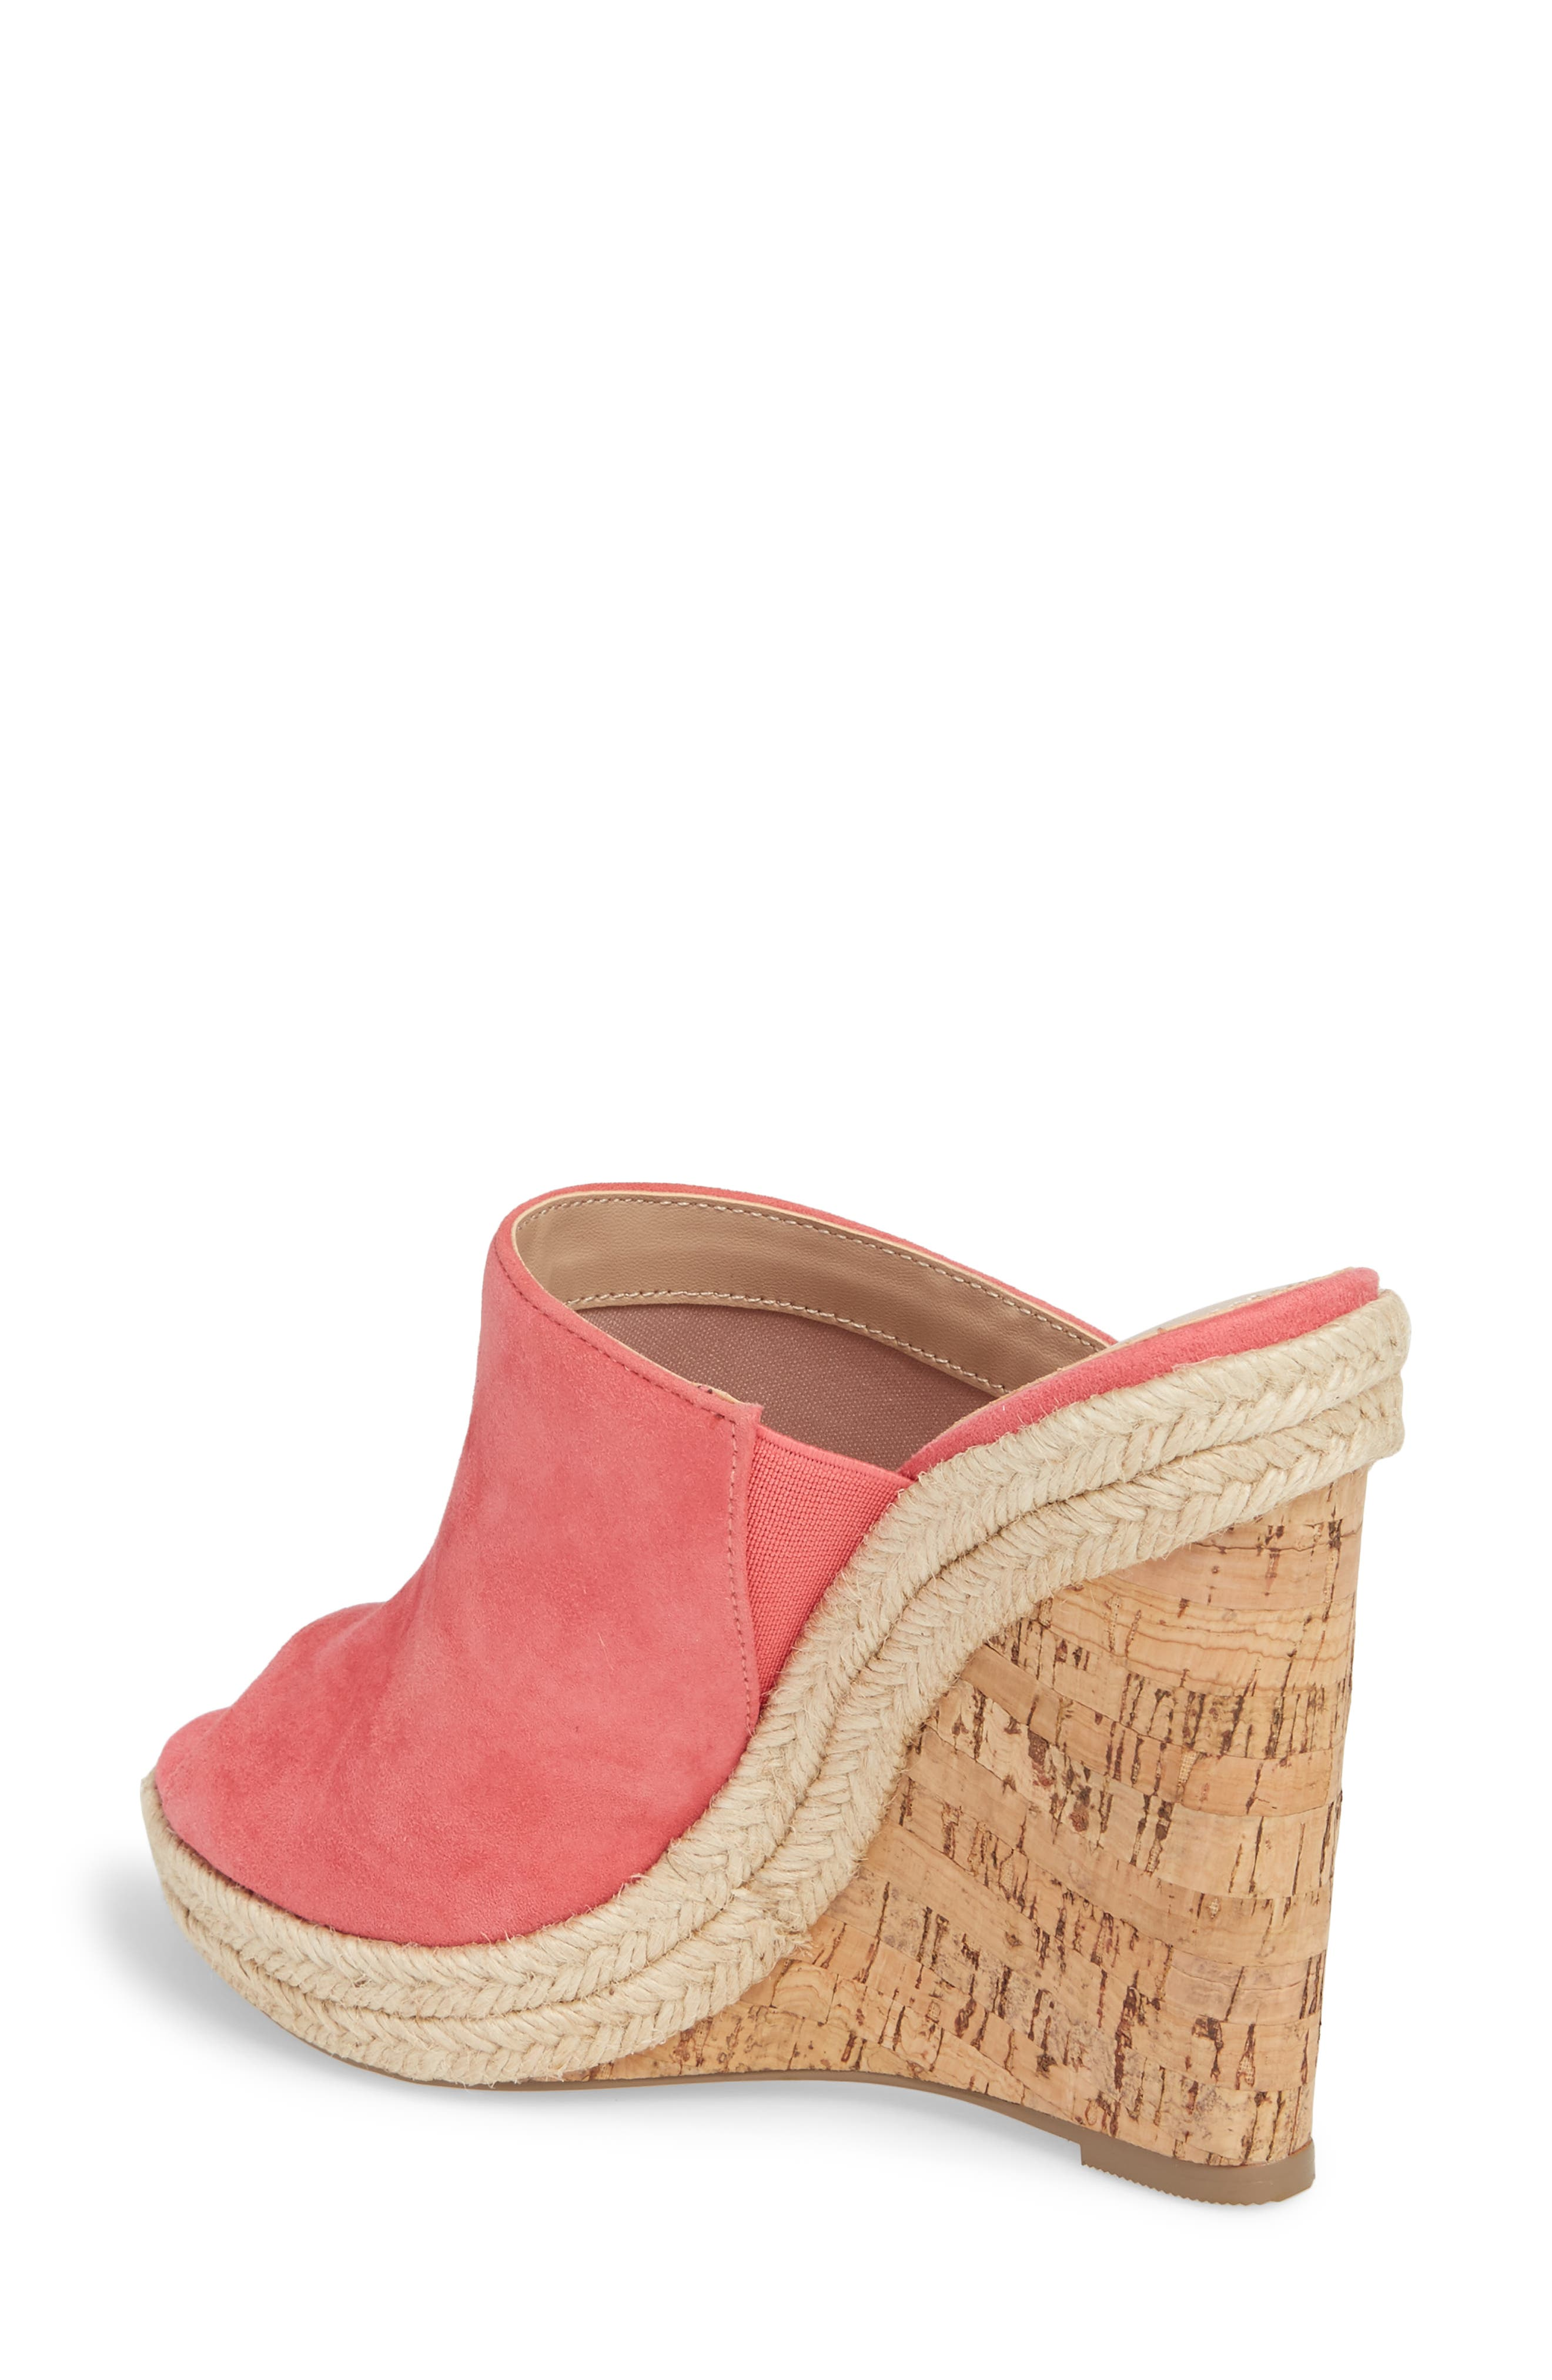 Balen Wedge,                             Alternate thumbnail 6, color,                             Coral Suede